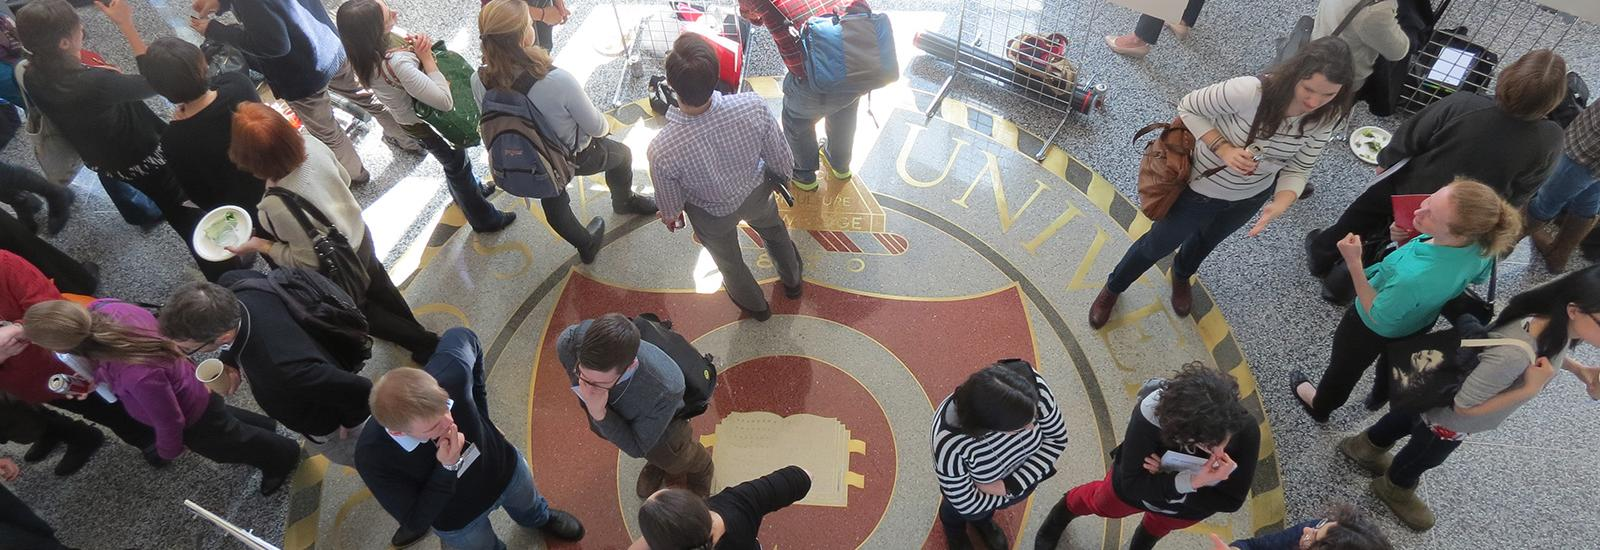 Overhead shot of students in an atrium